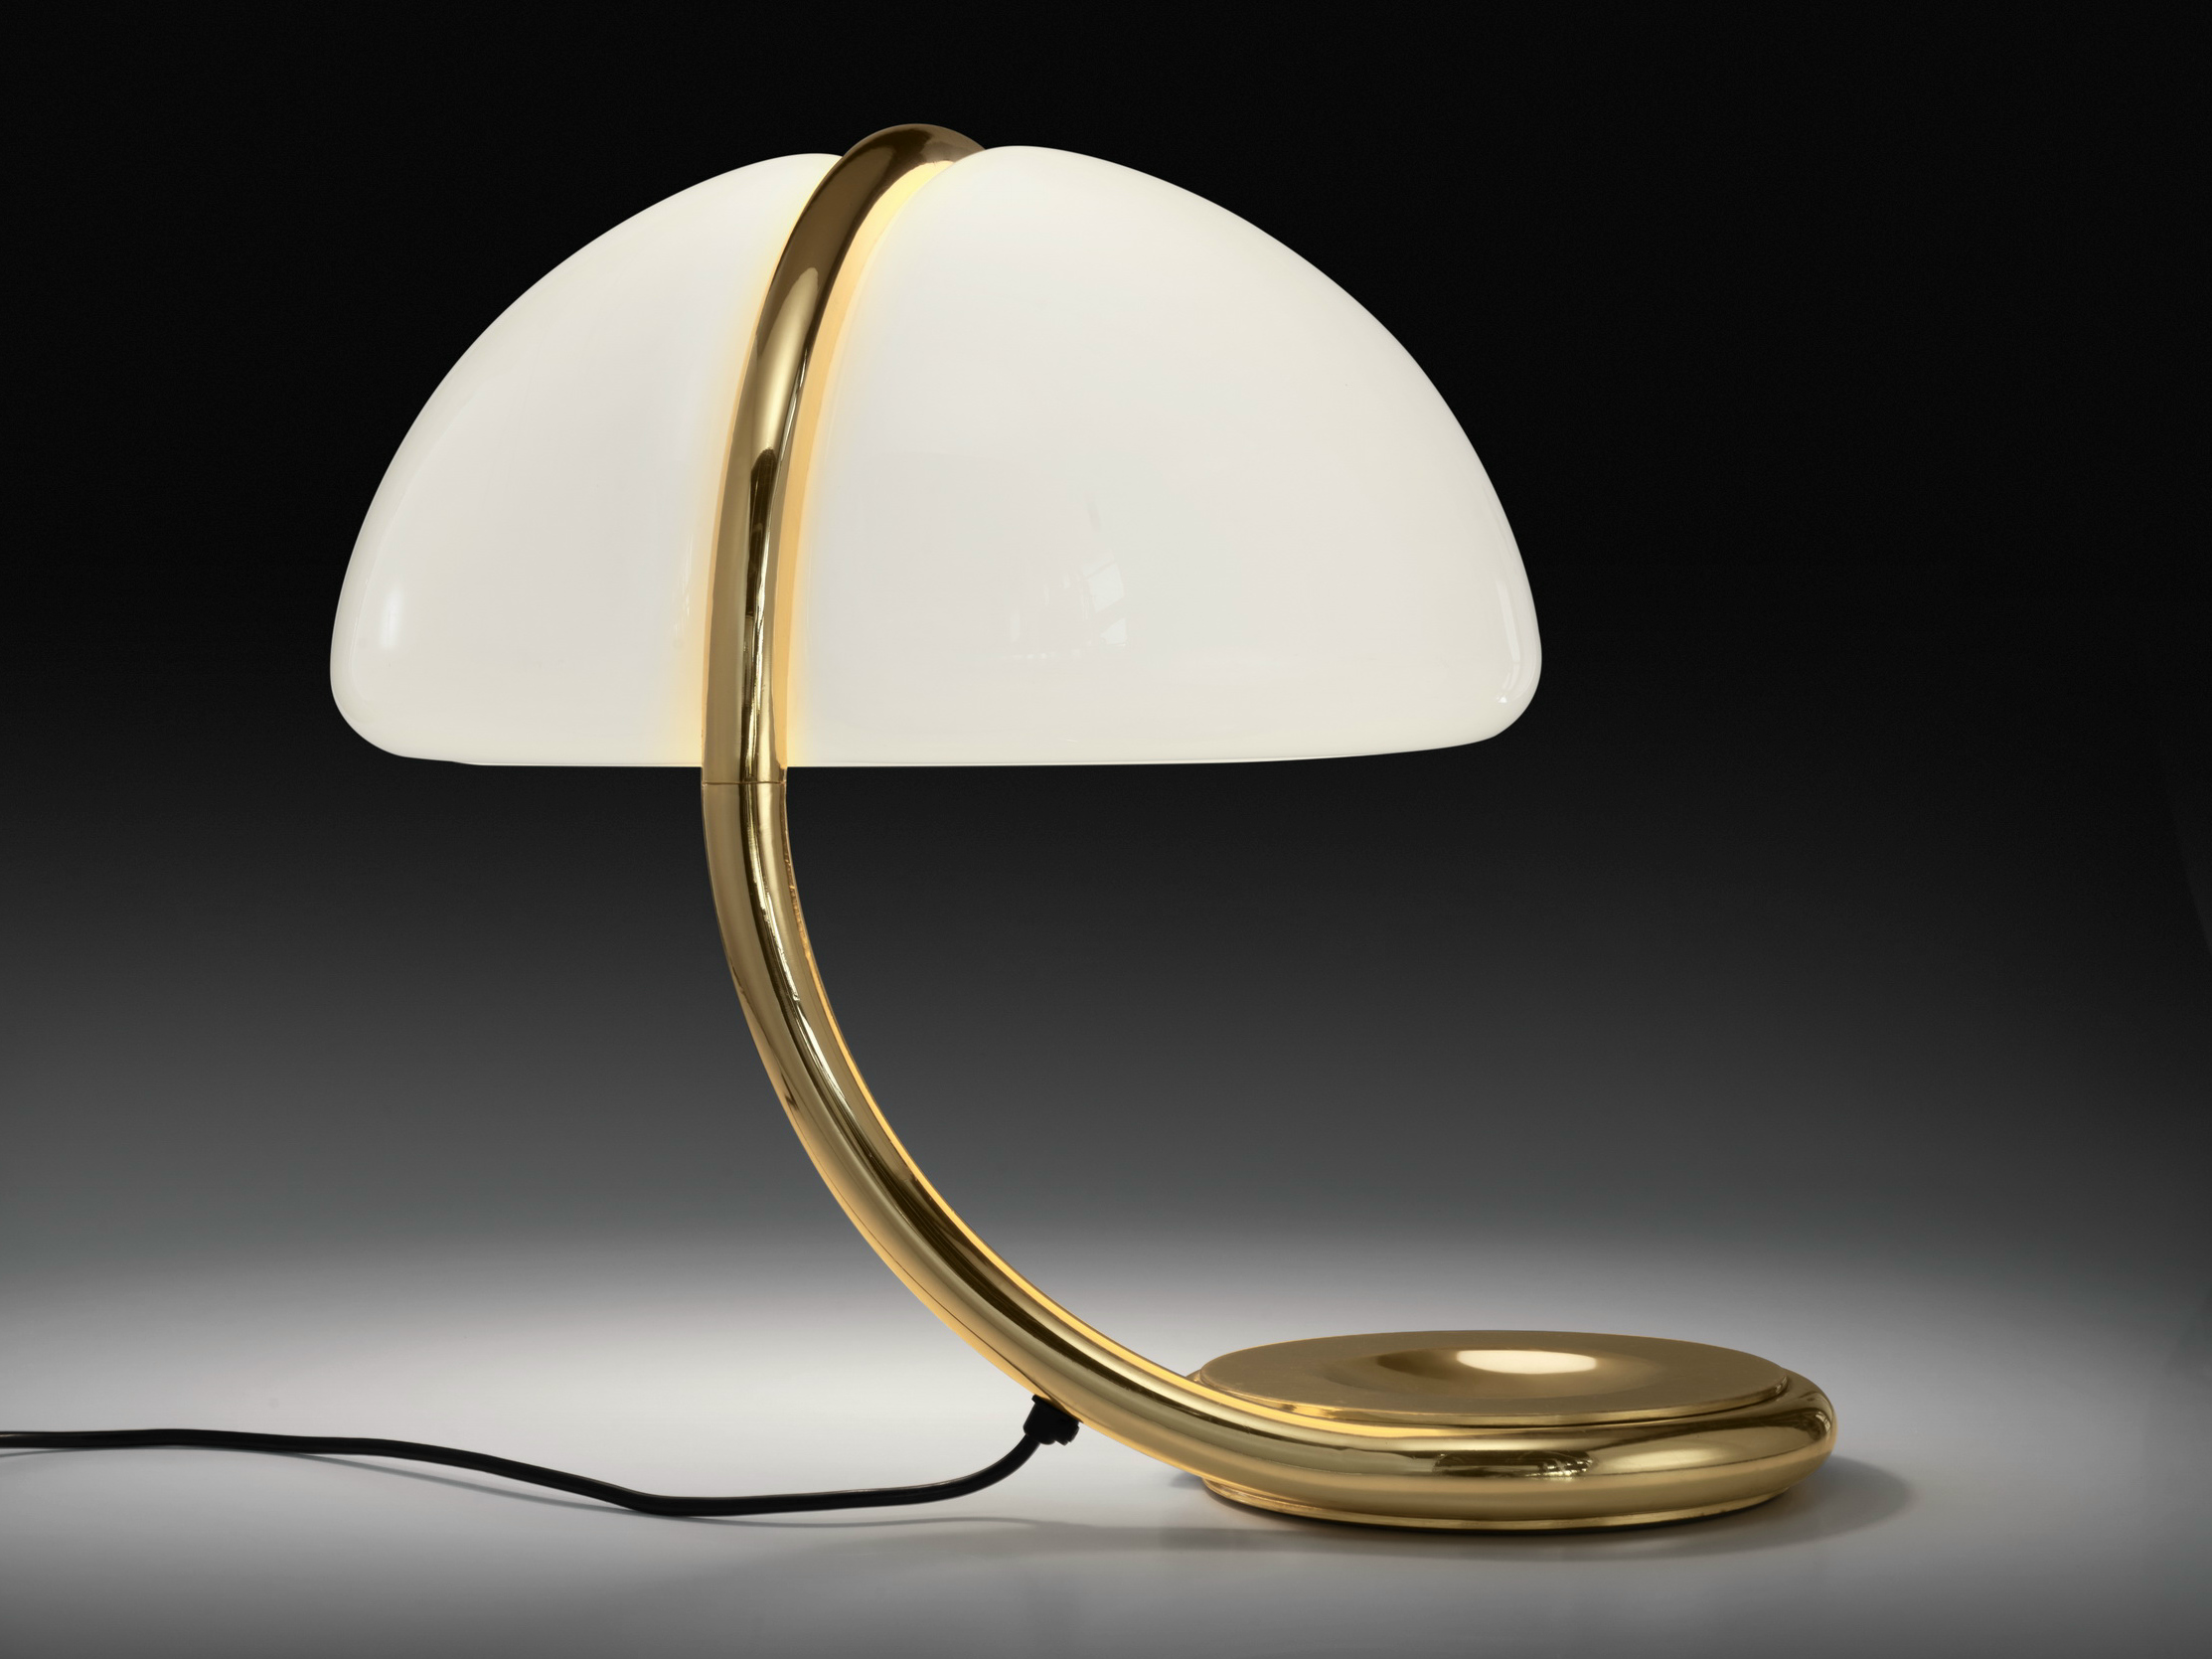 Serpente Table Lamp by Elio Martinelli for Martinelli Luce